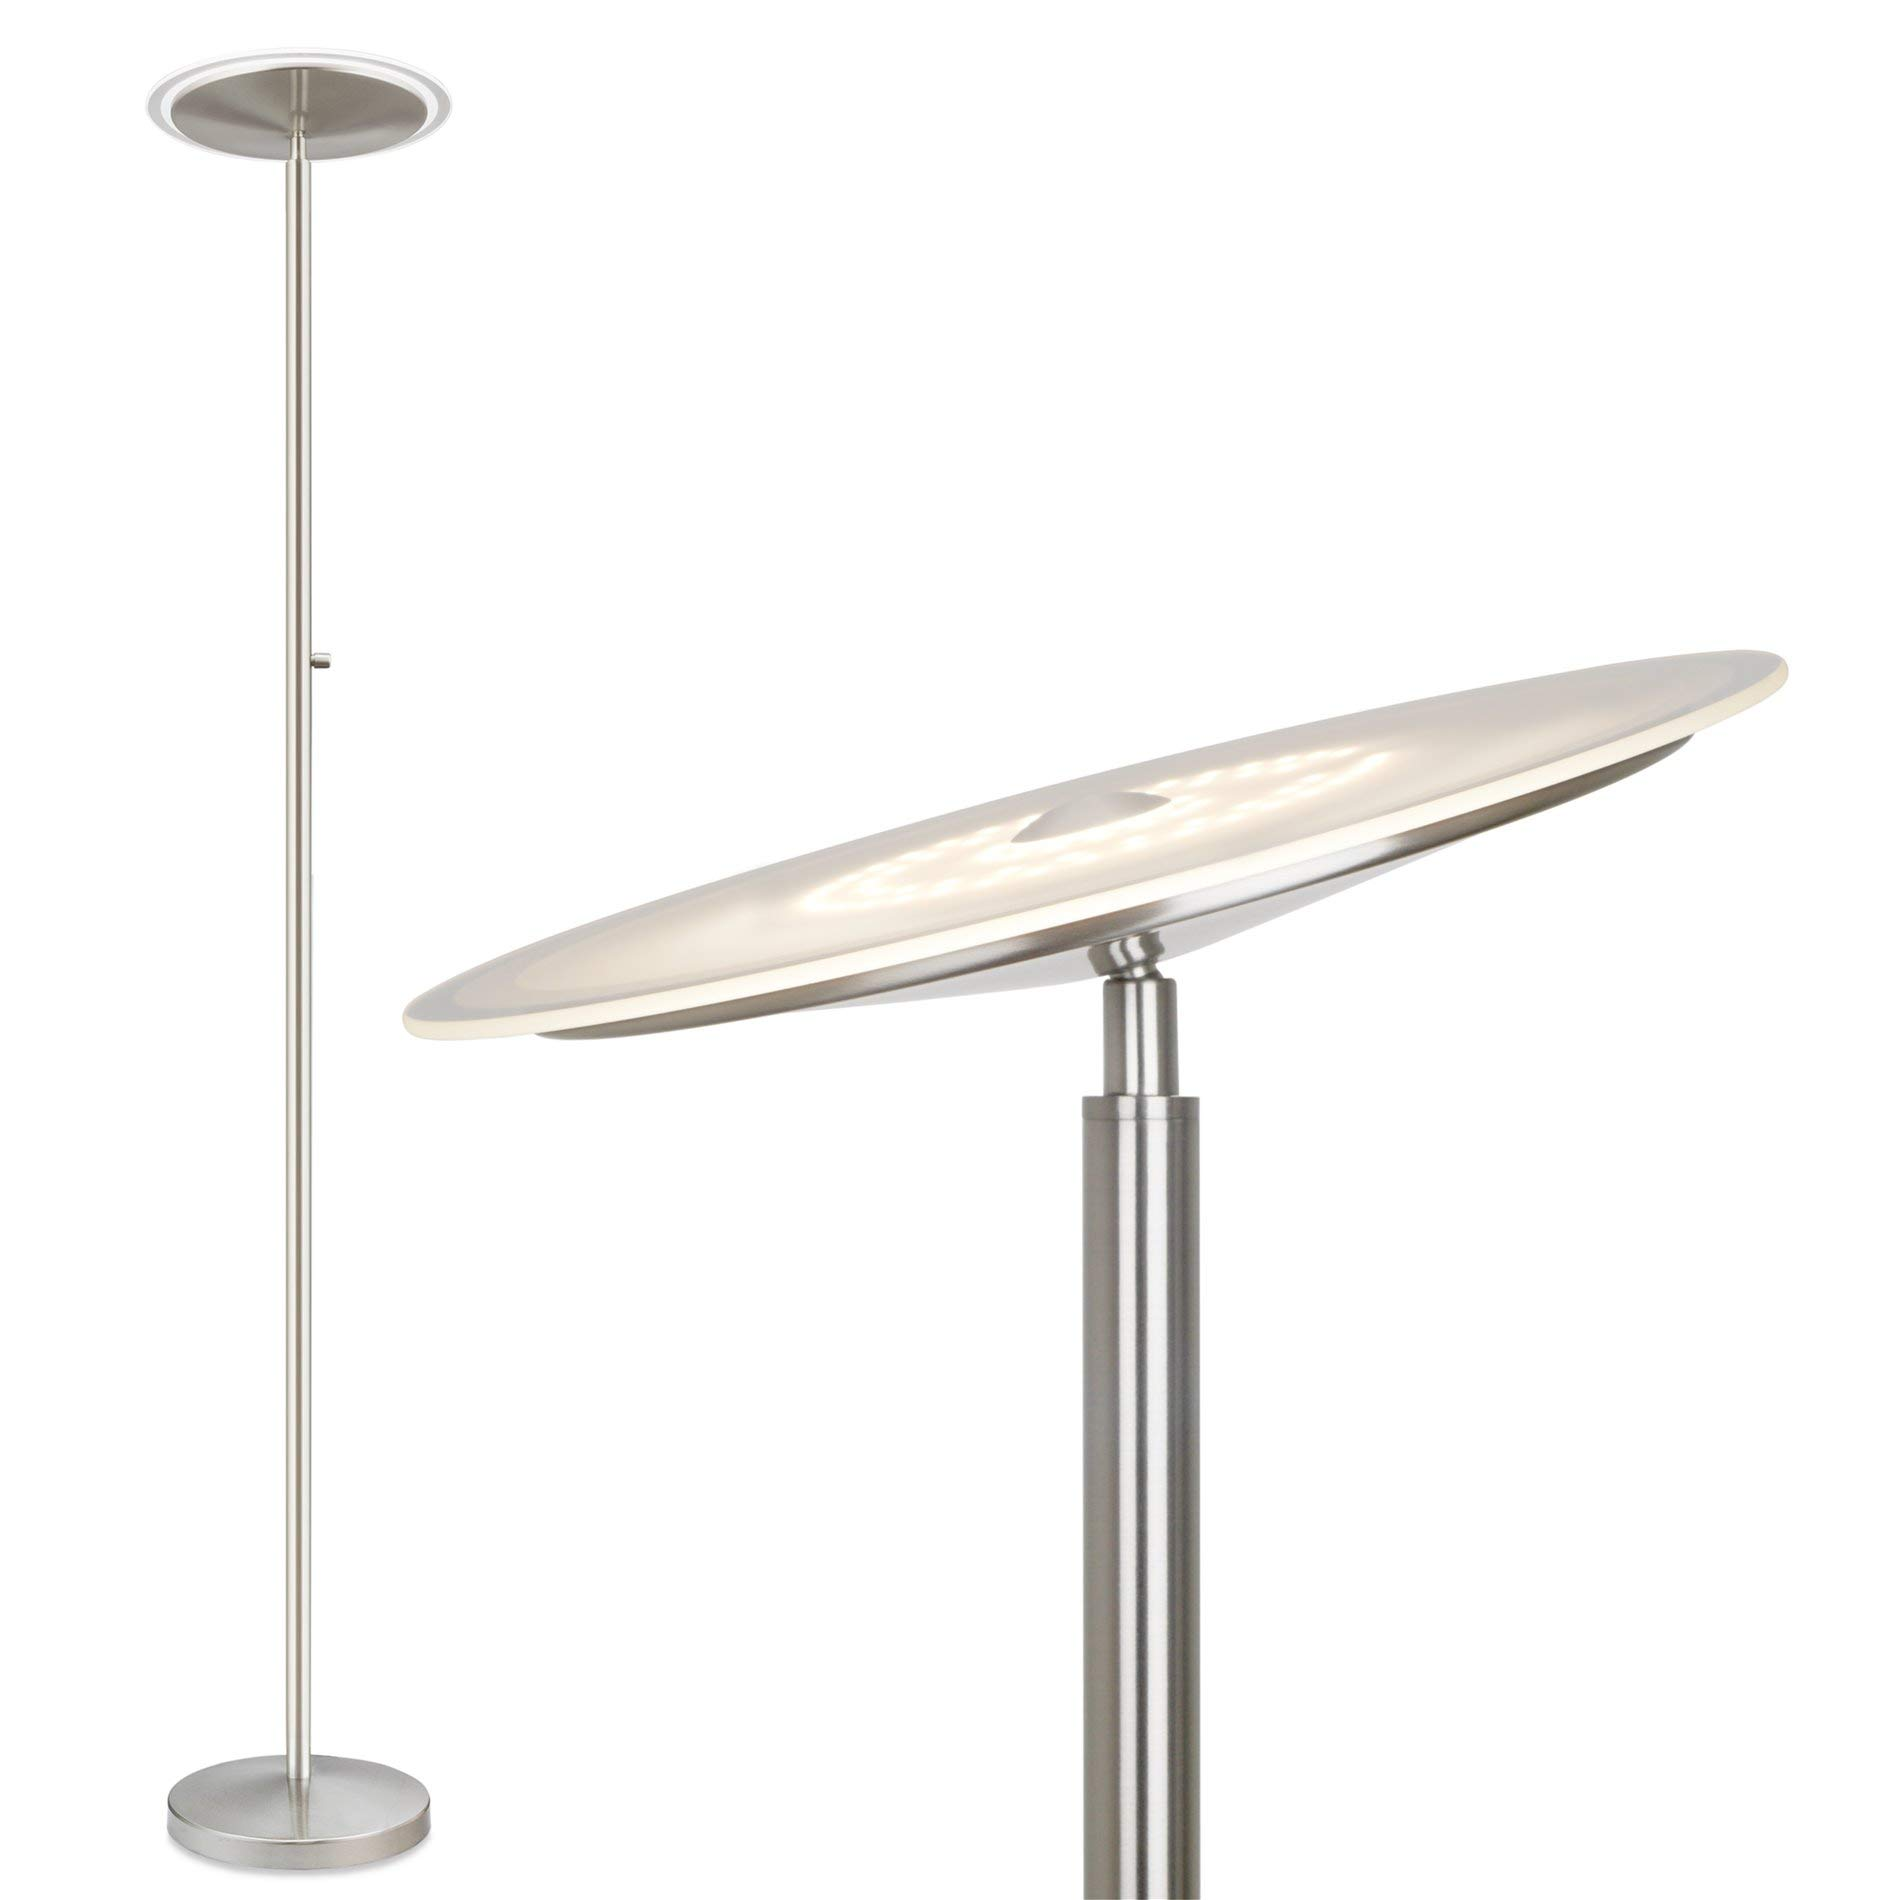 Kira Home Horizon 70'' Modern LED Torchiere Floor Lamp (36W, 250W eq.), Glass Diffuser, Dimmable, Timer and Wall Switch Compatible, Adjustable Head, 3000k Warm White Light, Brushed Nickel Finish by Kira Home